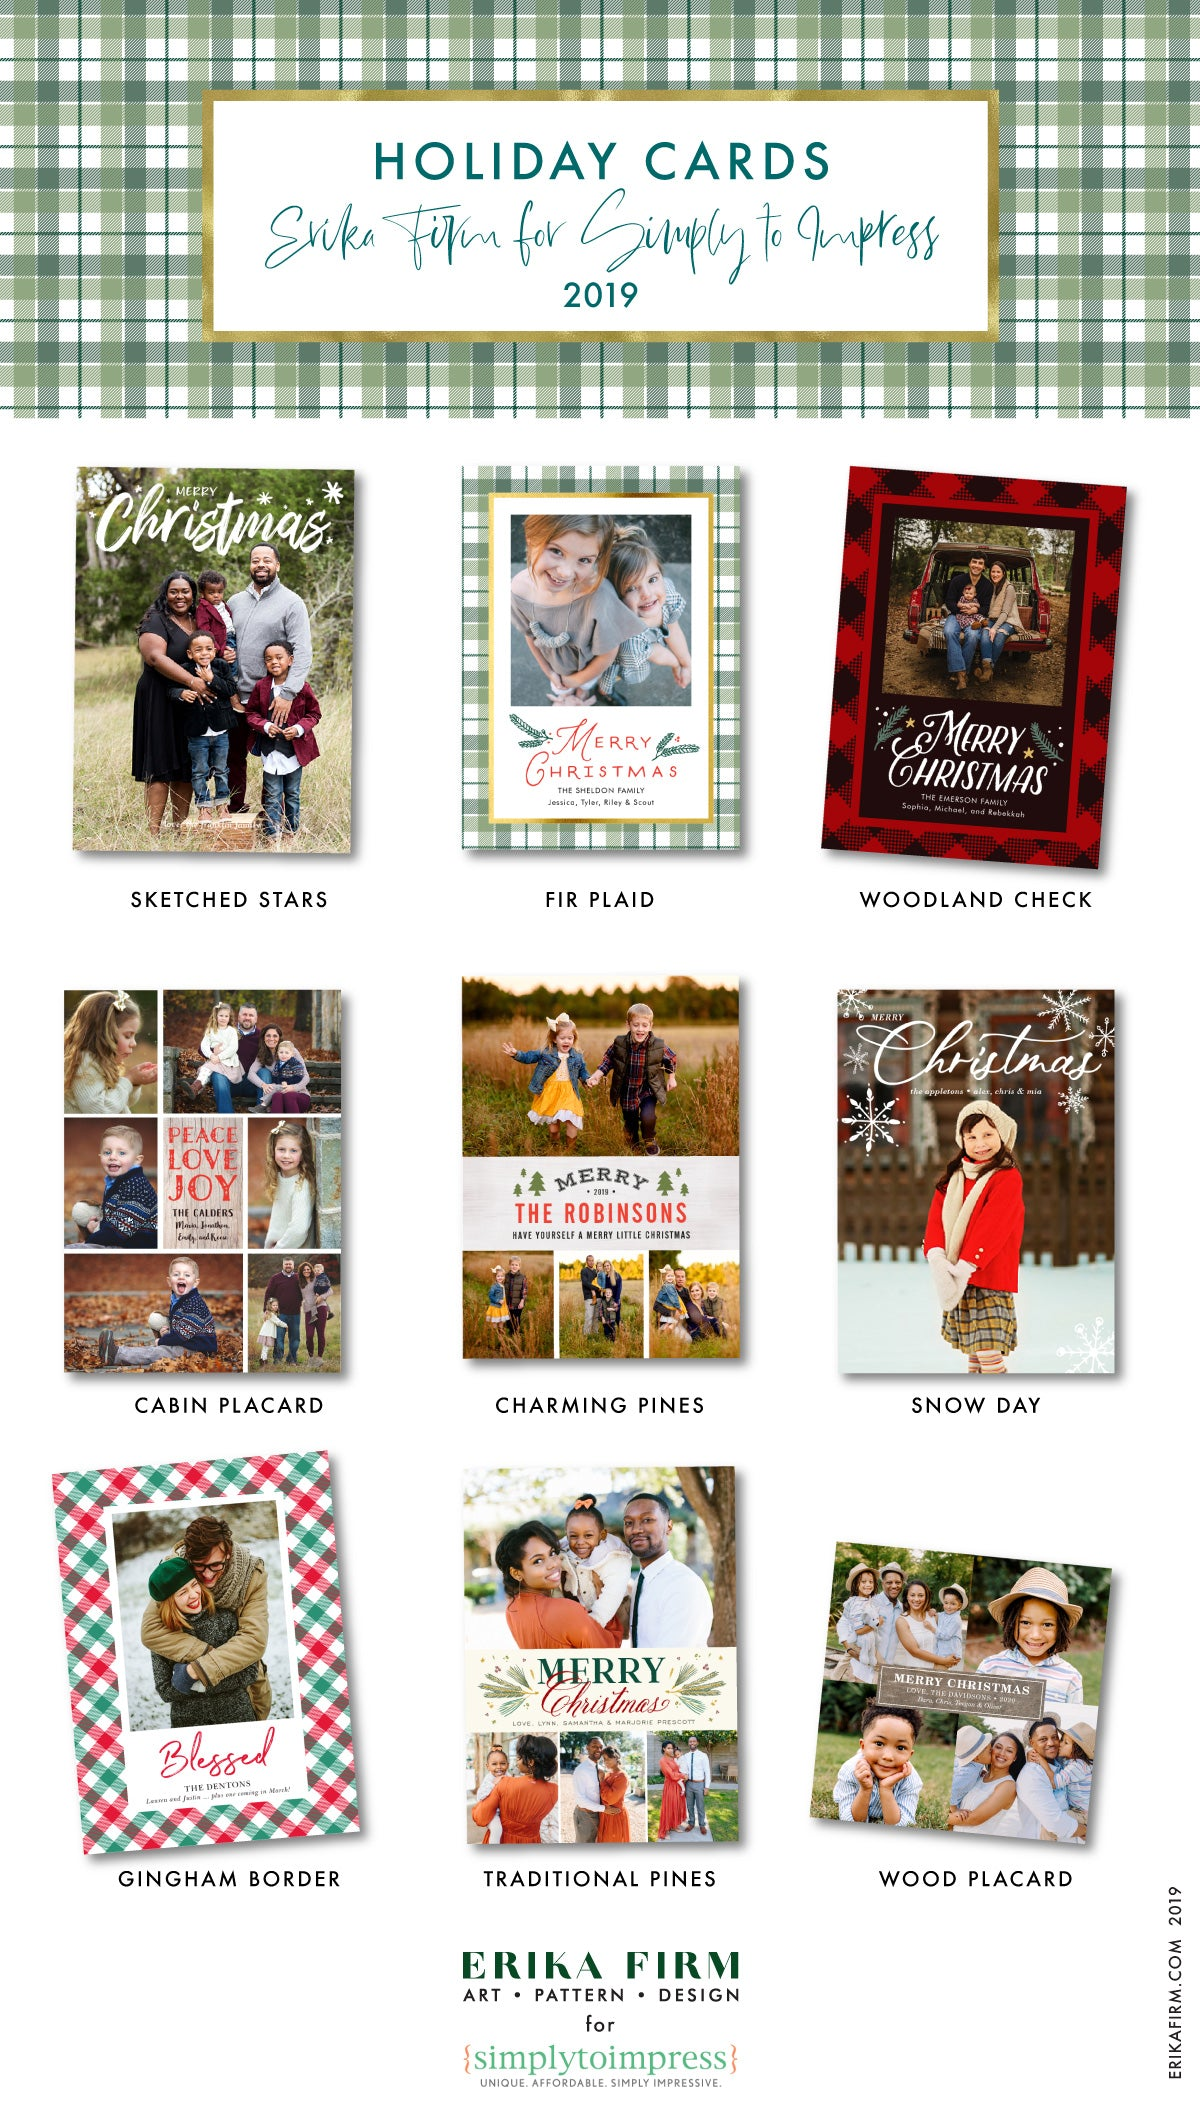 Holiday Card Collection 2019 by Erika Firm for Simply To Impress